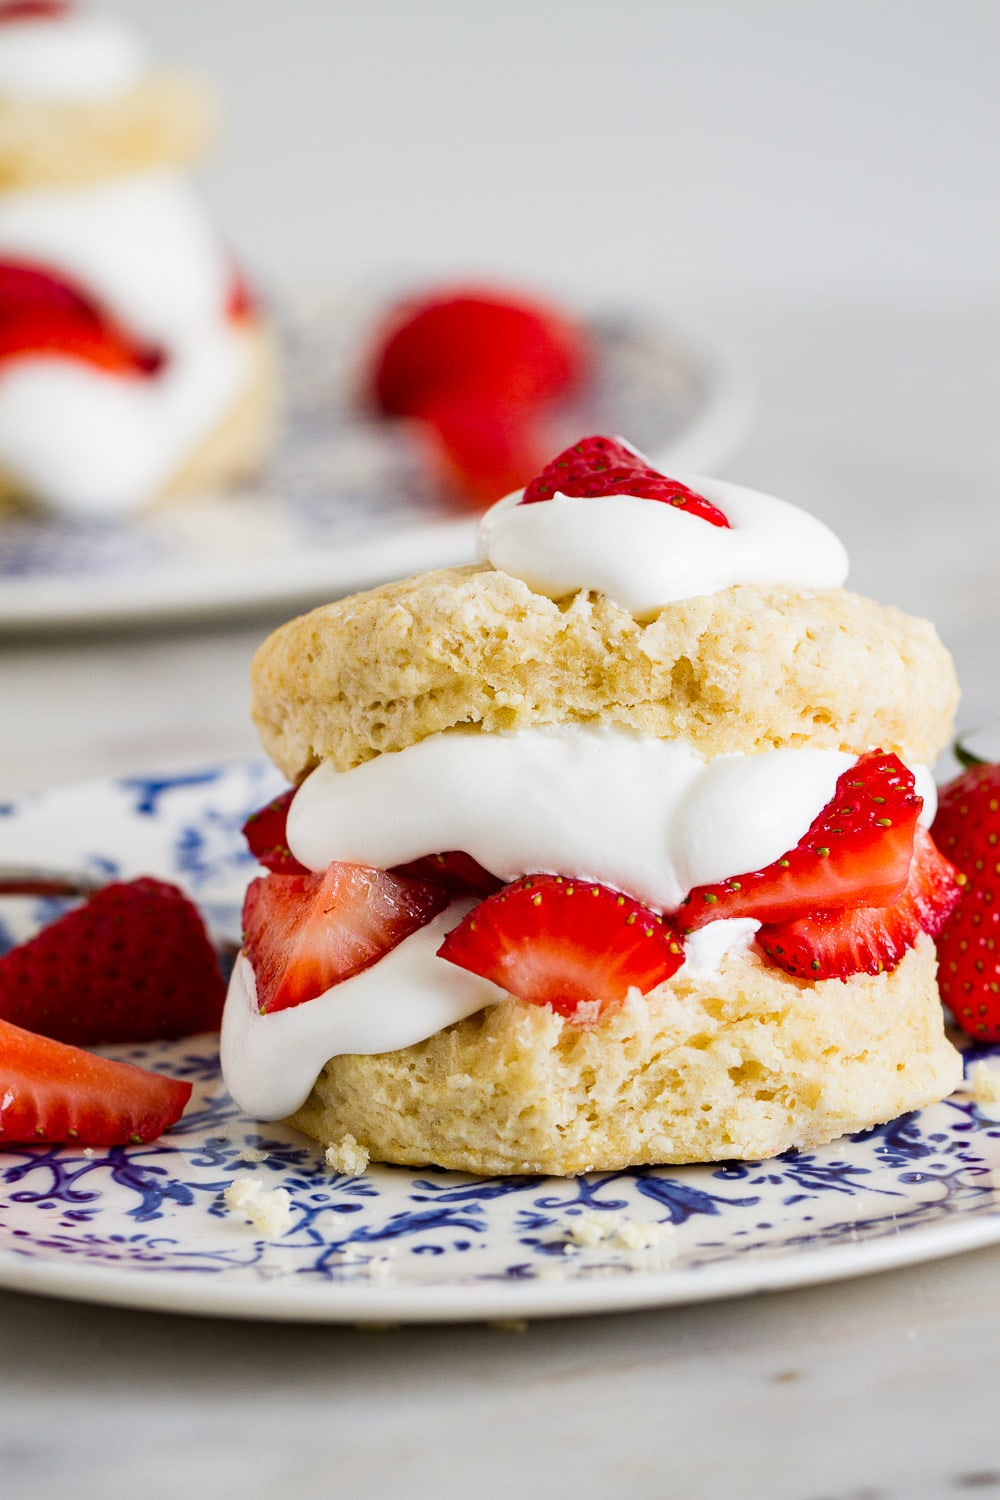 top down view of vegan strawberry shortcake on a blue and white plate with fork.